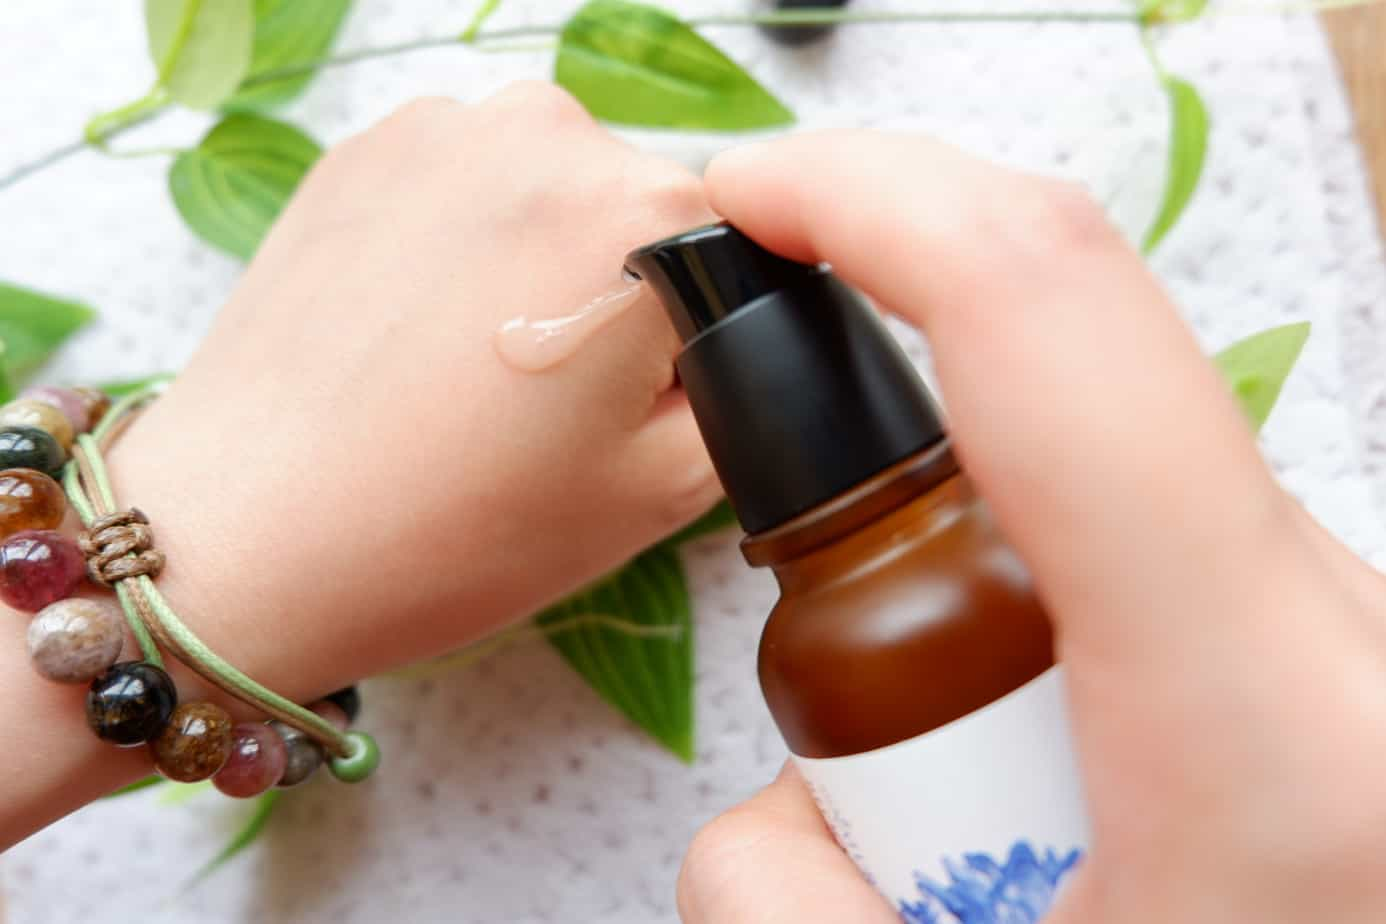 all-natural-blooming-lifting-essence-hoa-thanh-cuc-2